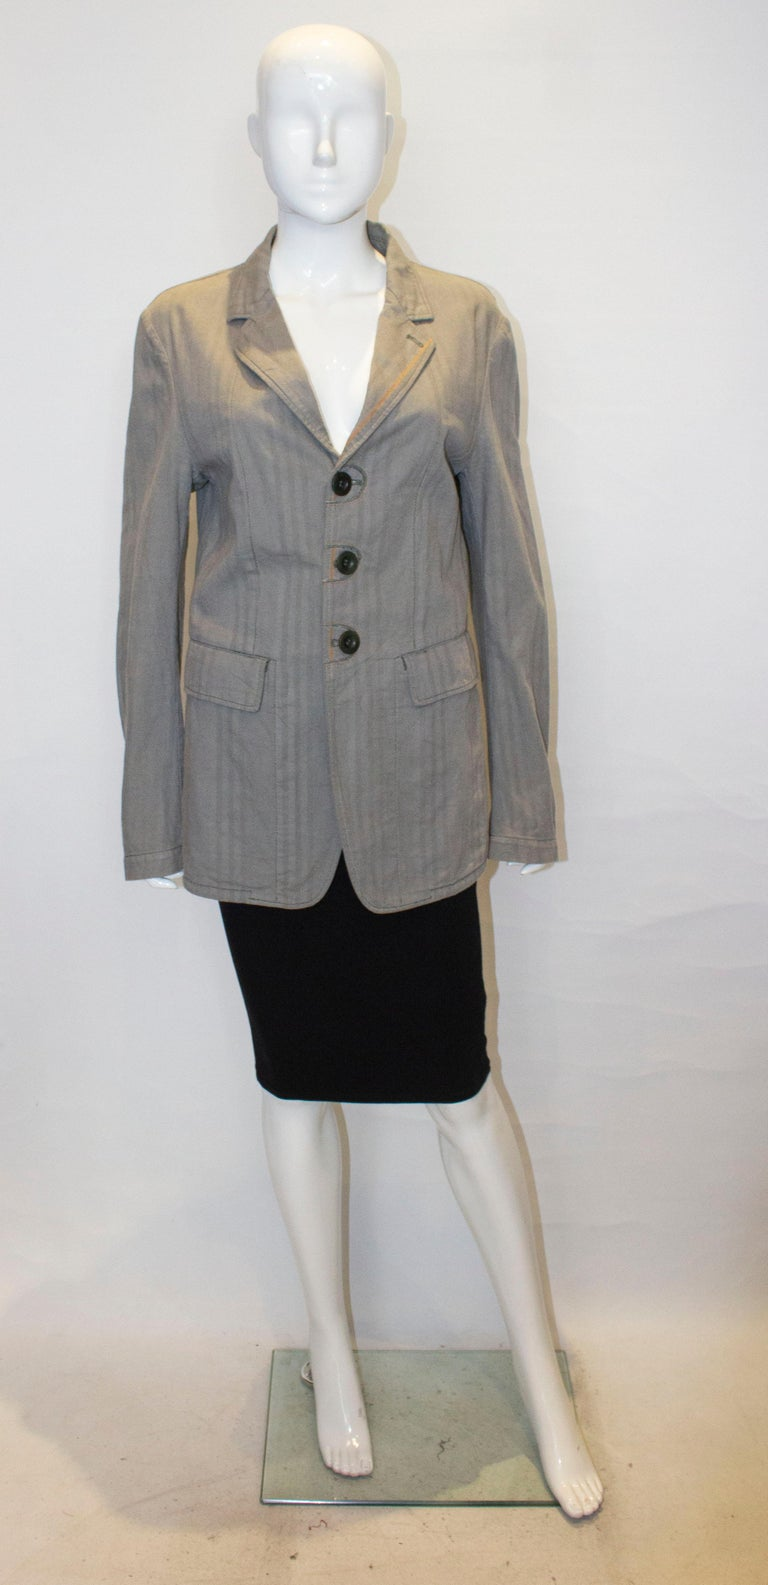 A chic cotton jacket by Marithe Francois Girbaud.  The jacket is in an interesting mix pattern fabric. It is unlined, with  three button front opening, two large pockets on the front, a one button cuff and 7 '' slit at the back.